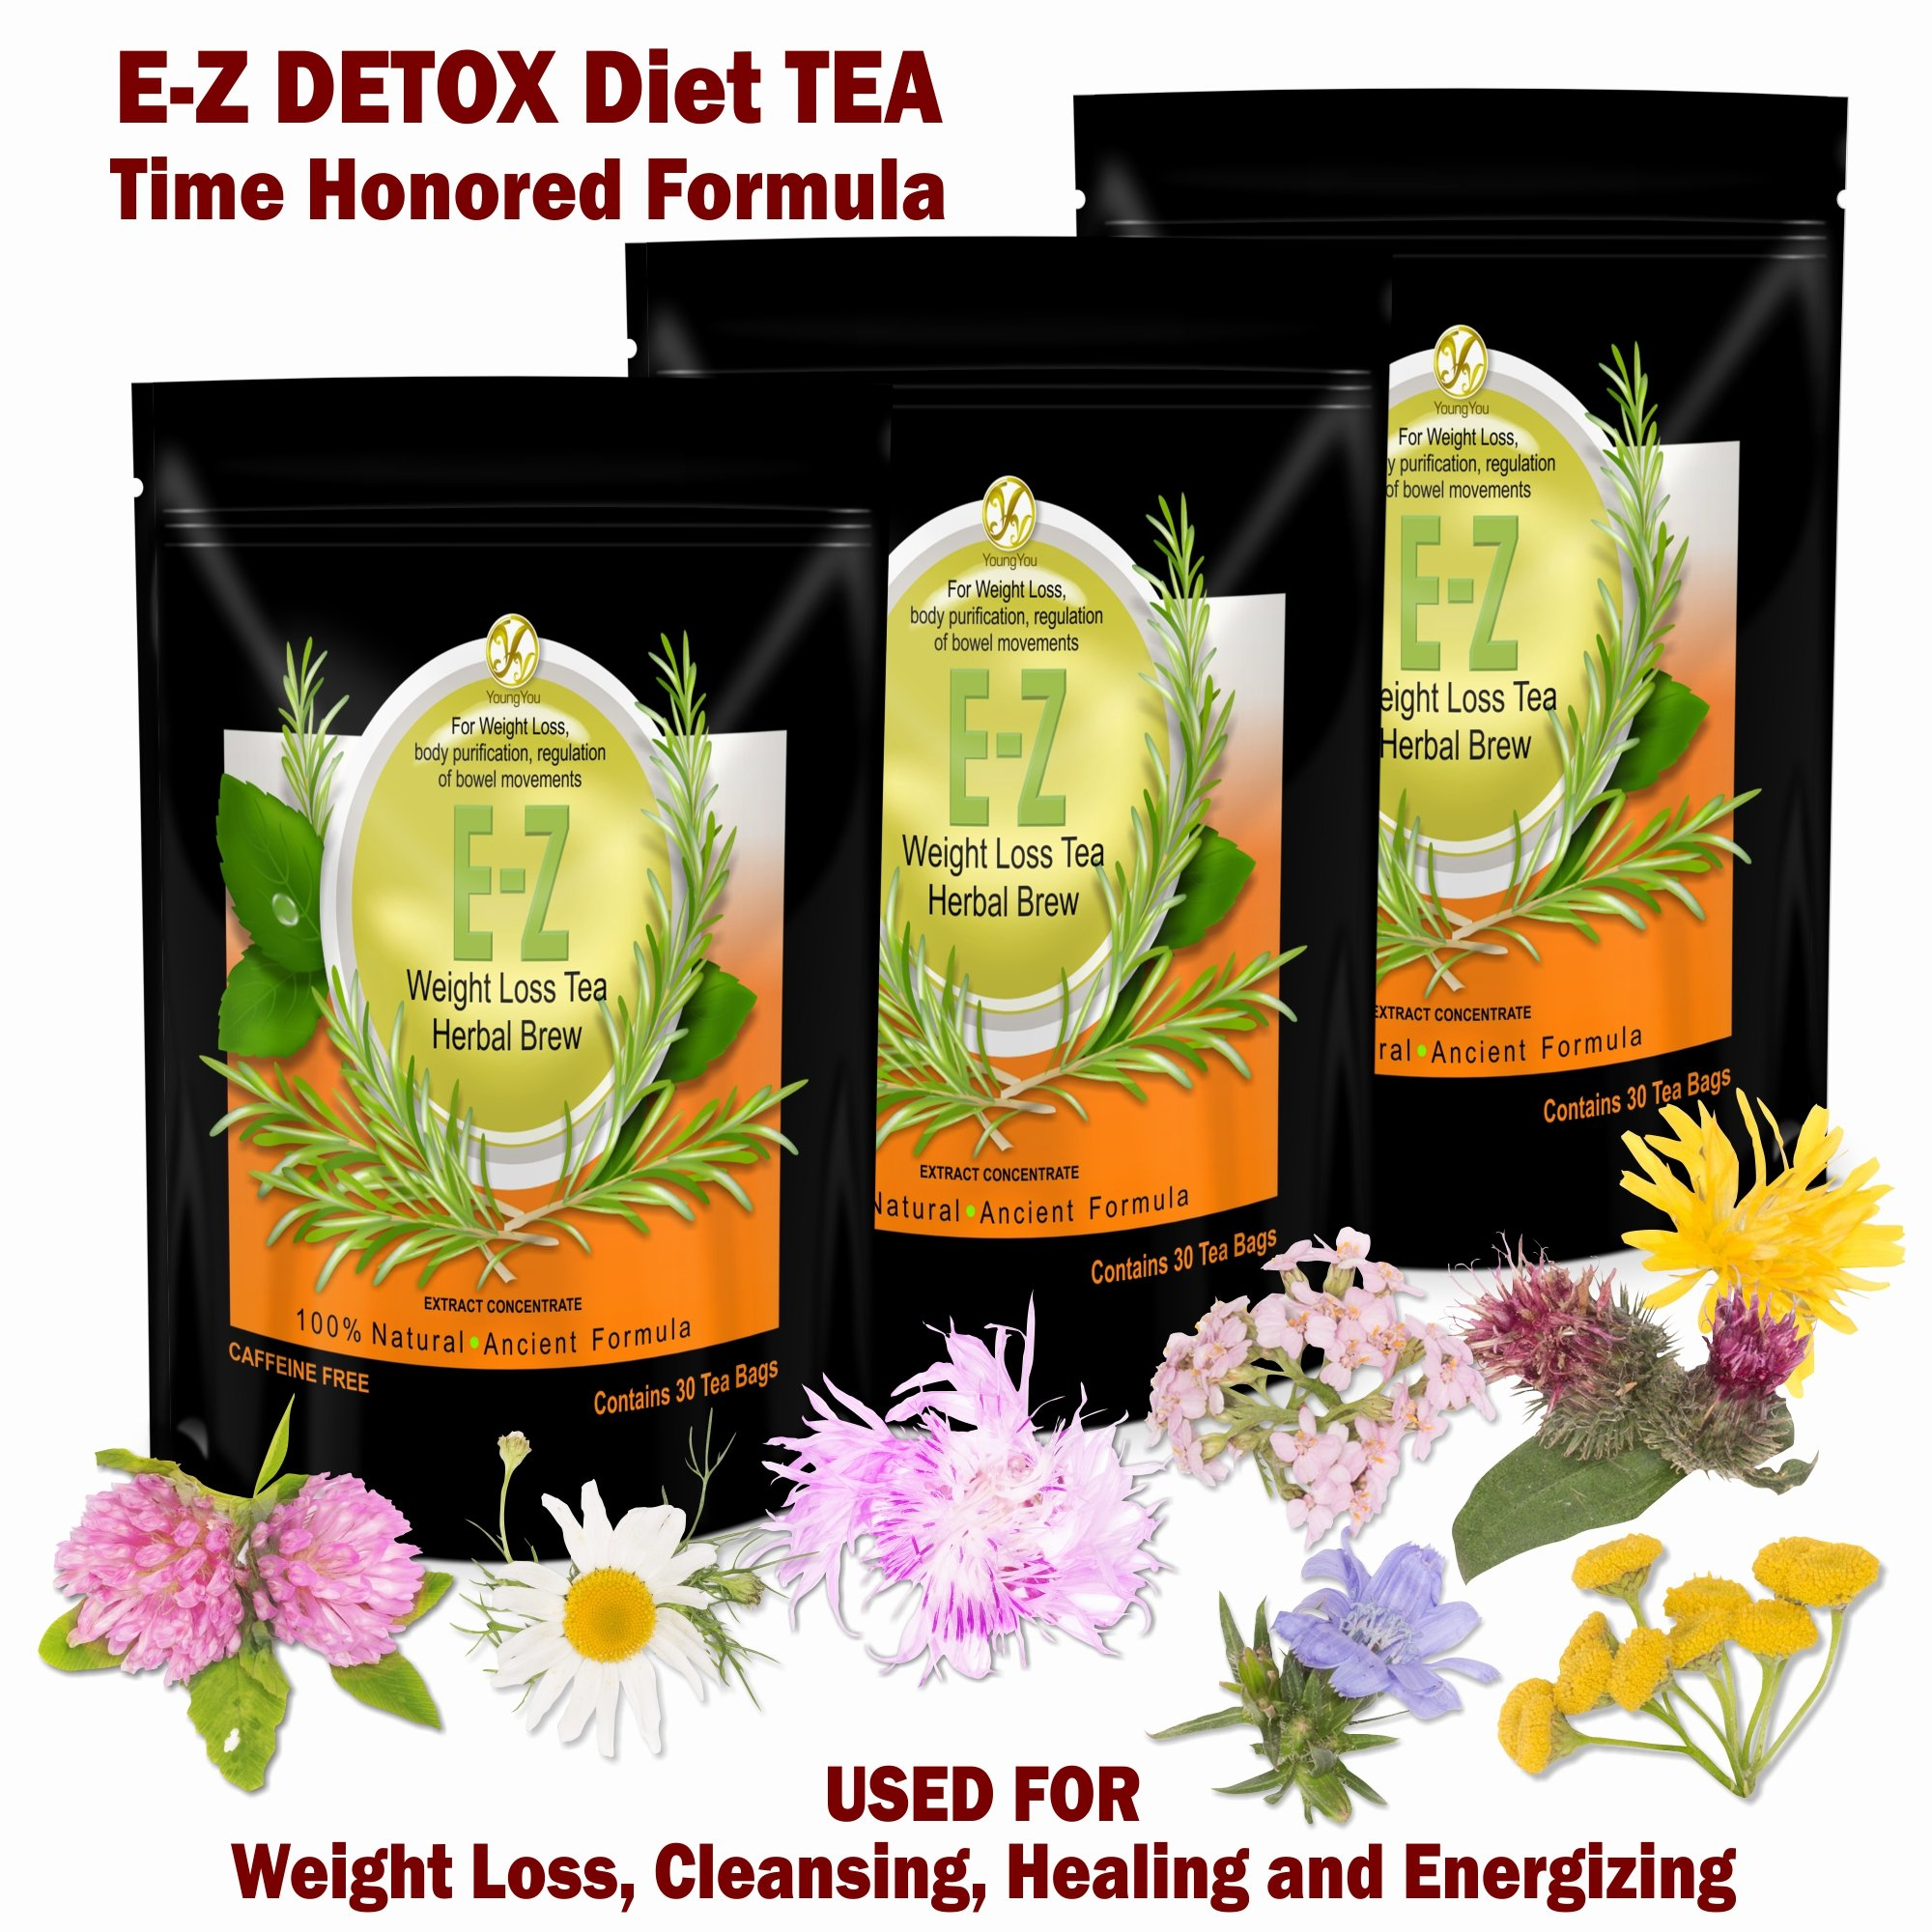 E-Z Detox Diet Tea: Fat Burner. Appetite Suppressant. Fast Weight Loss and Body Cleanse. Proven Weight Loss Diet Tea 3 packs